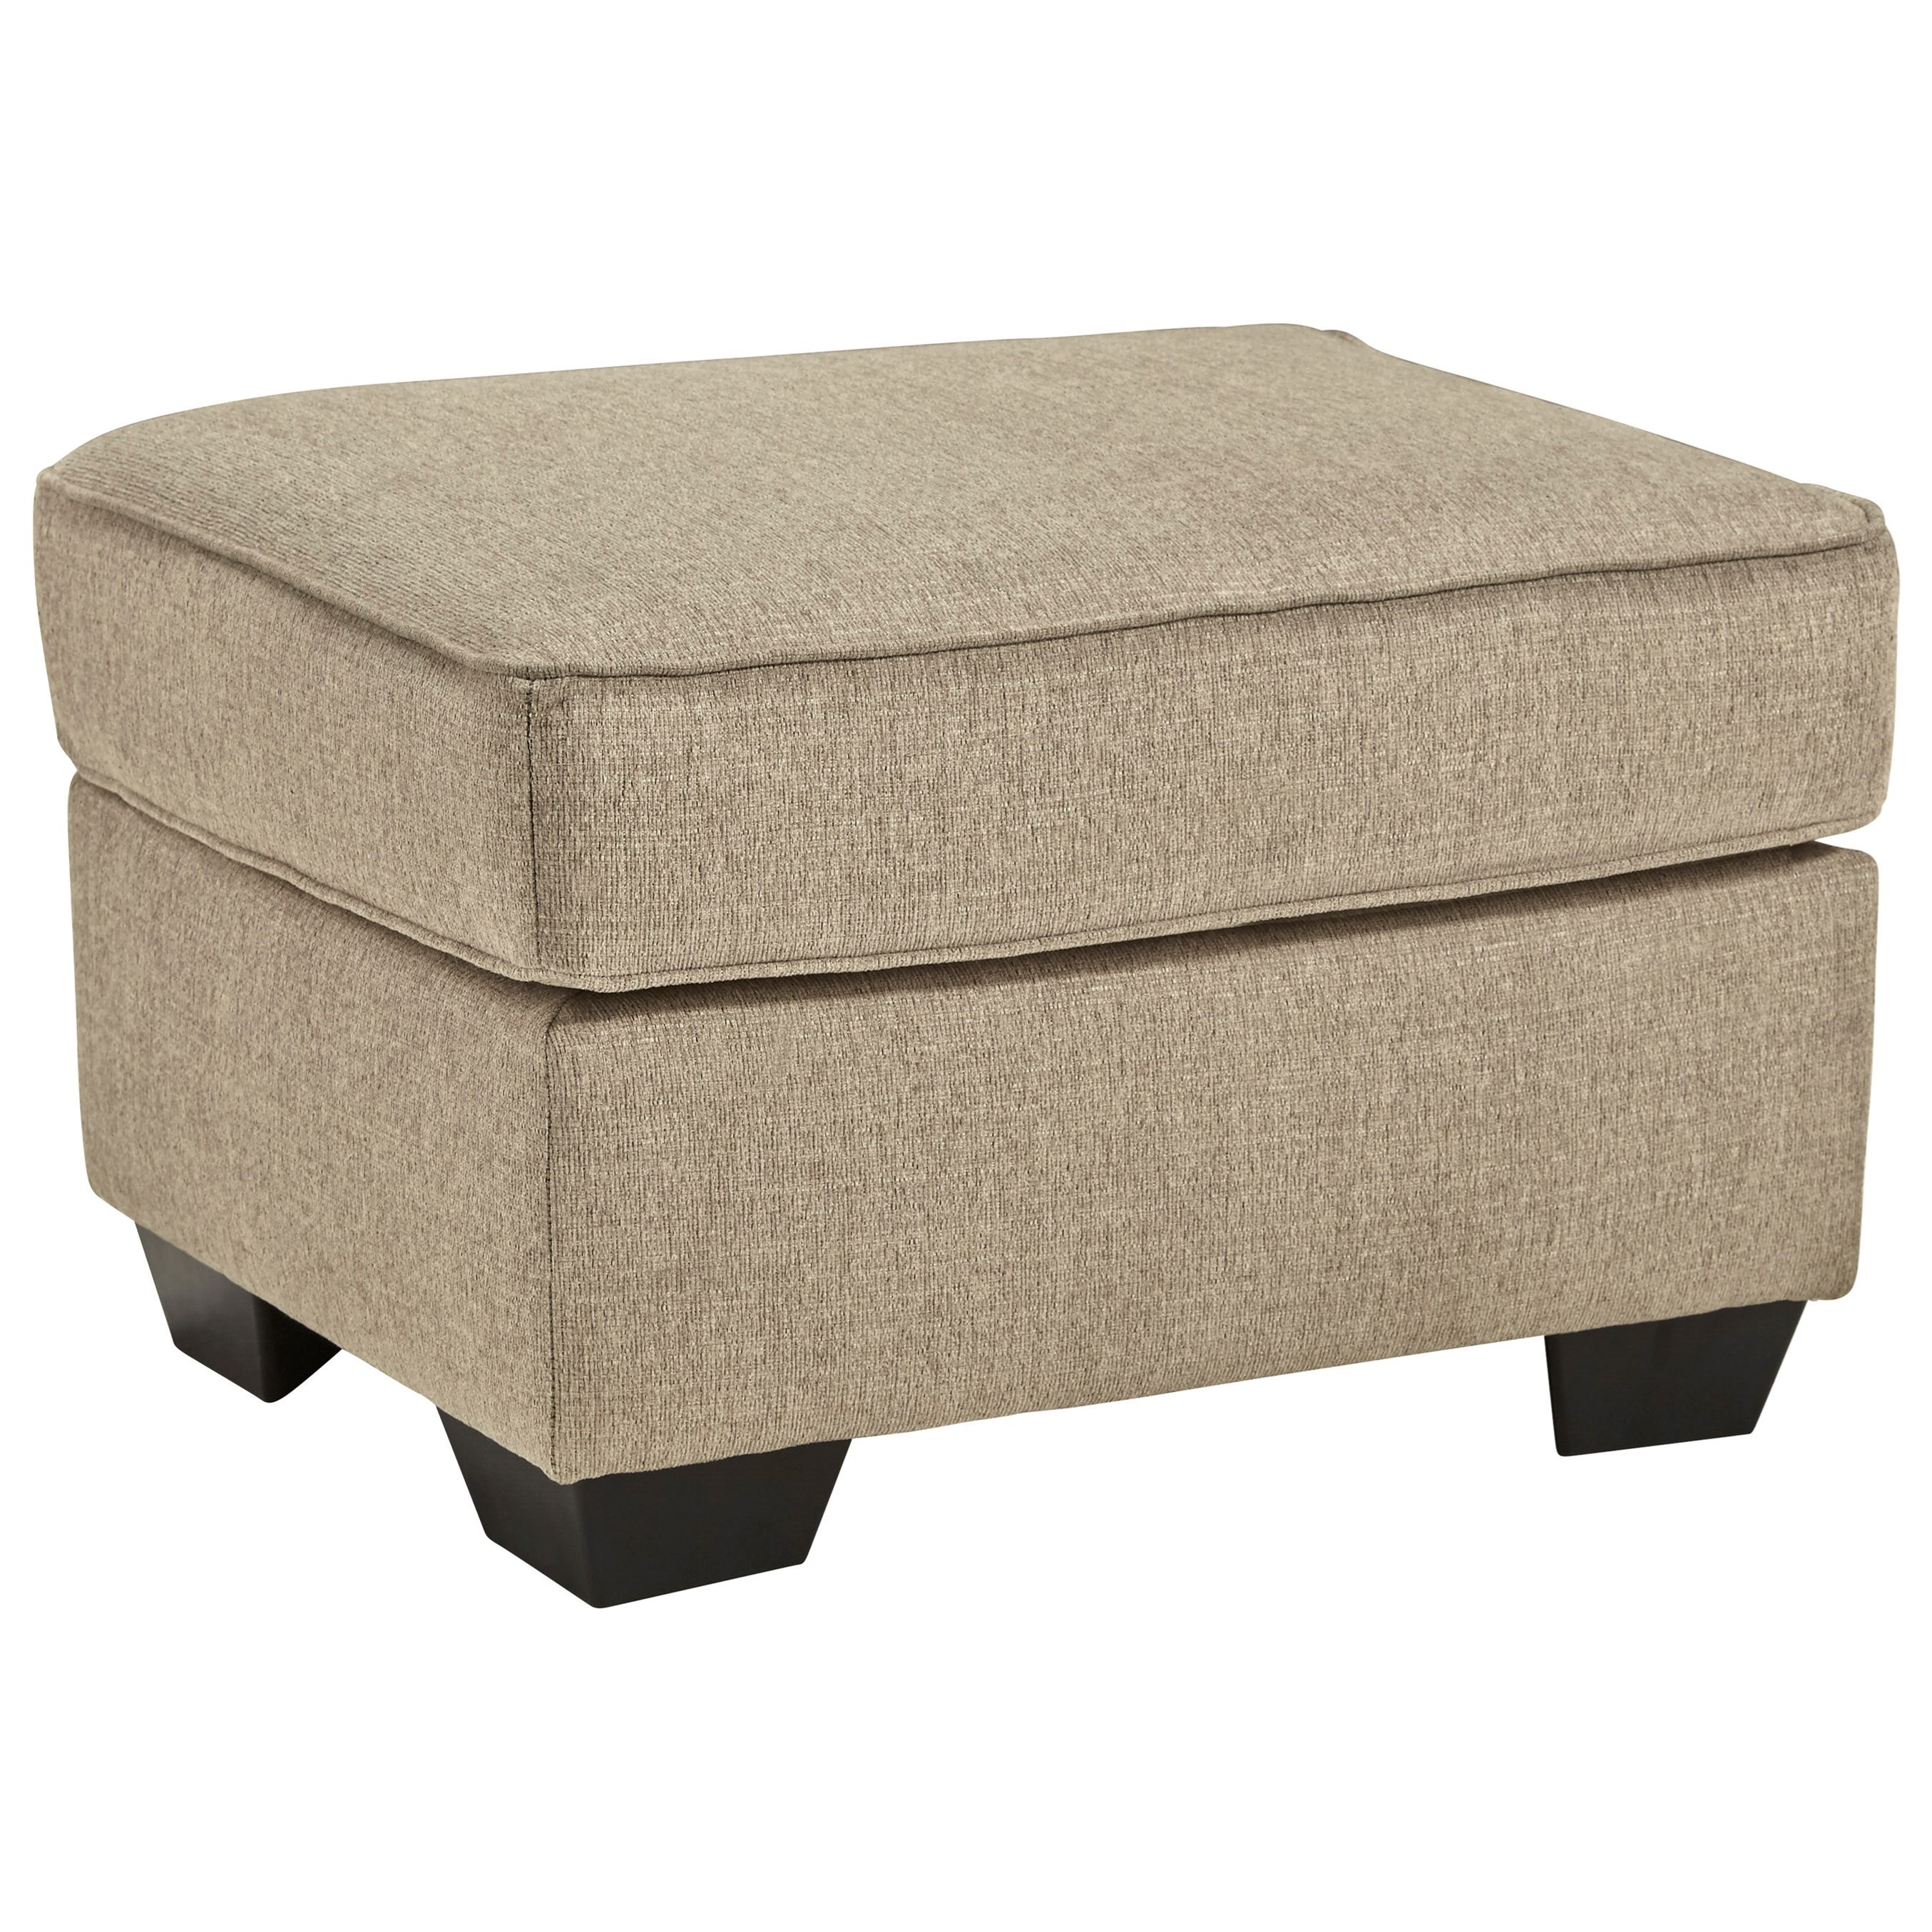 Ardmead Ottoman by Benchcraft at Carolina Direct